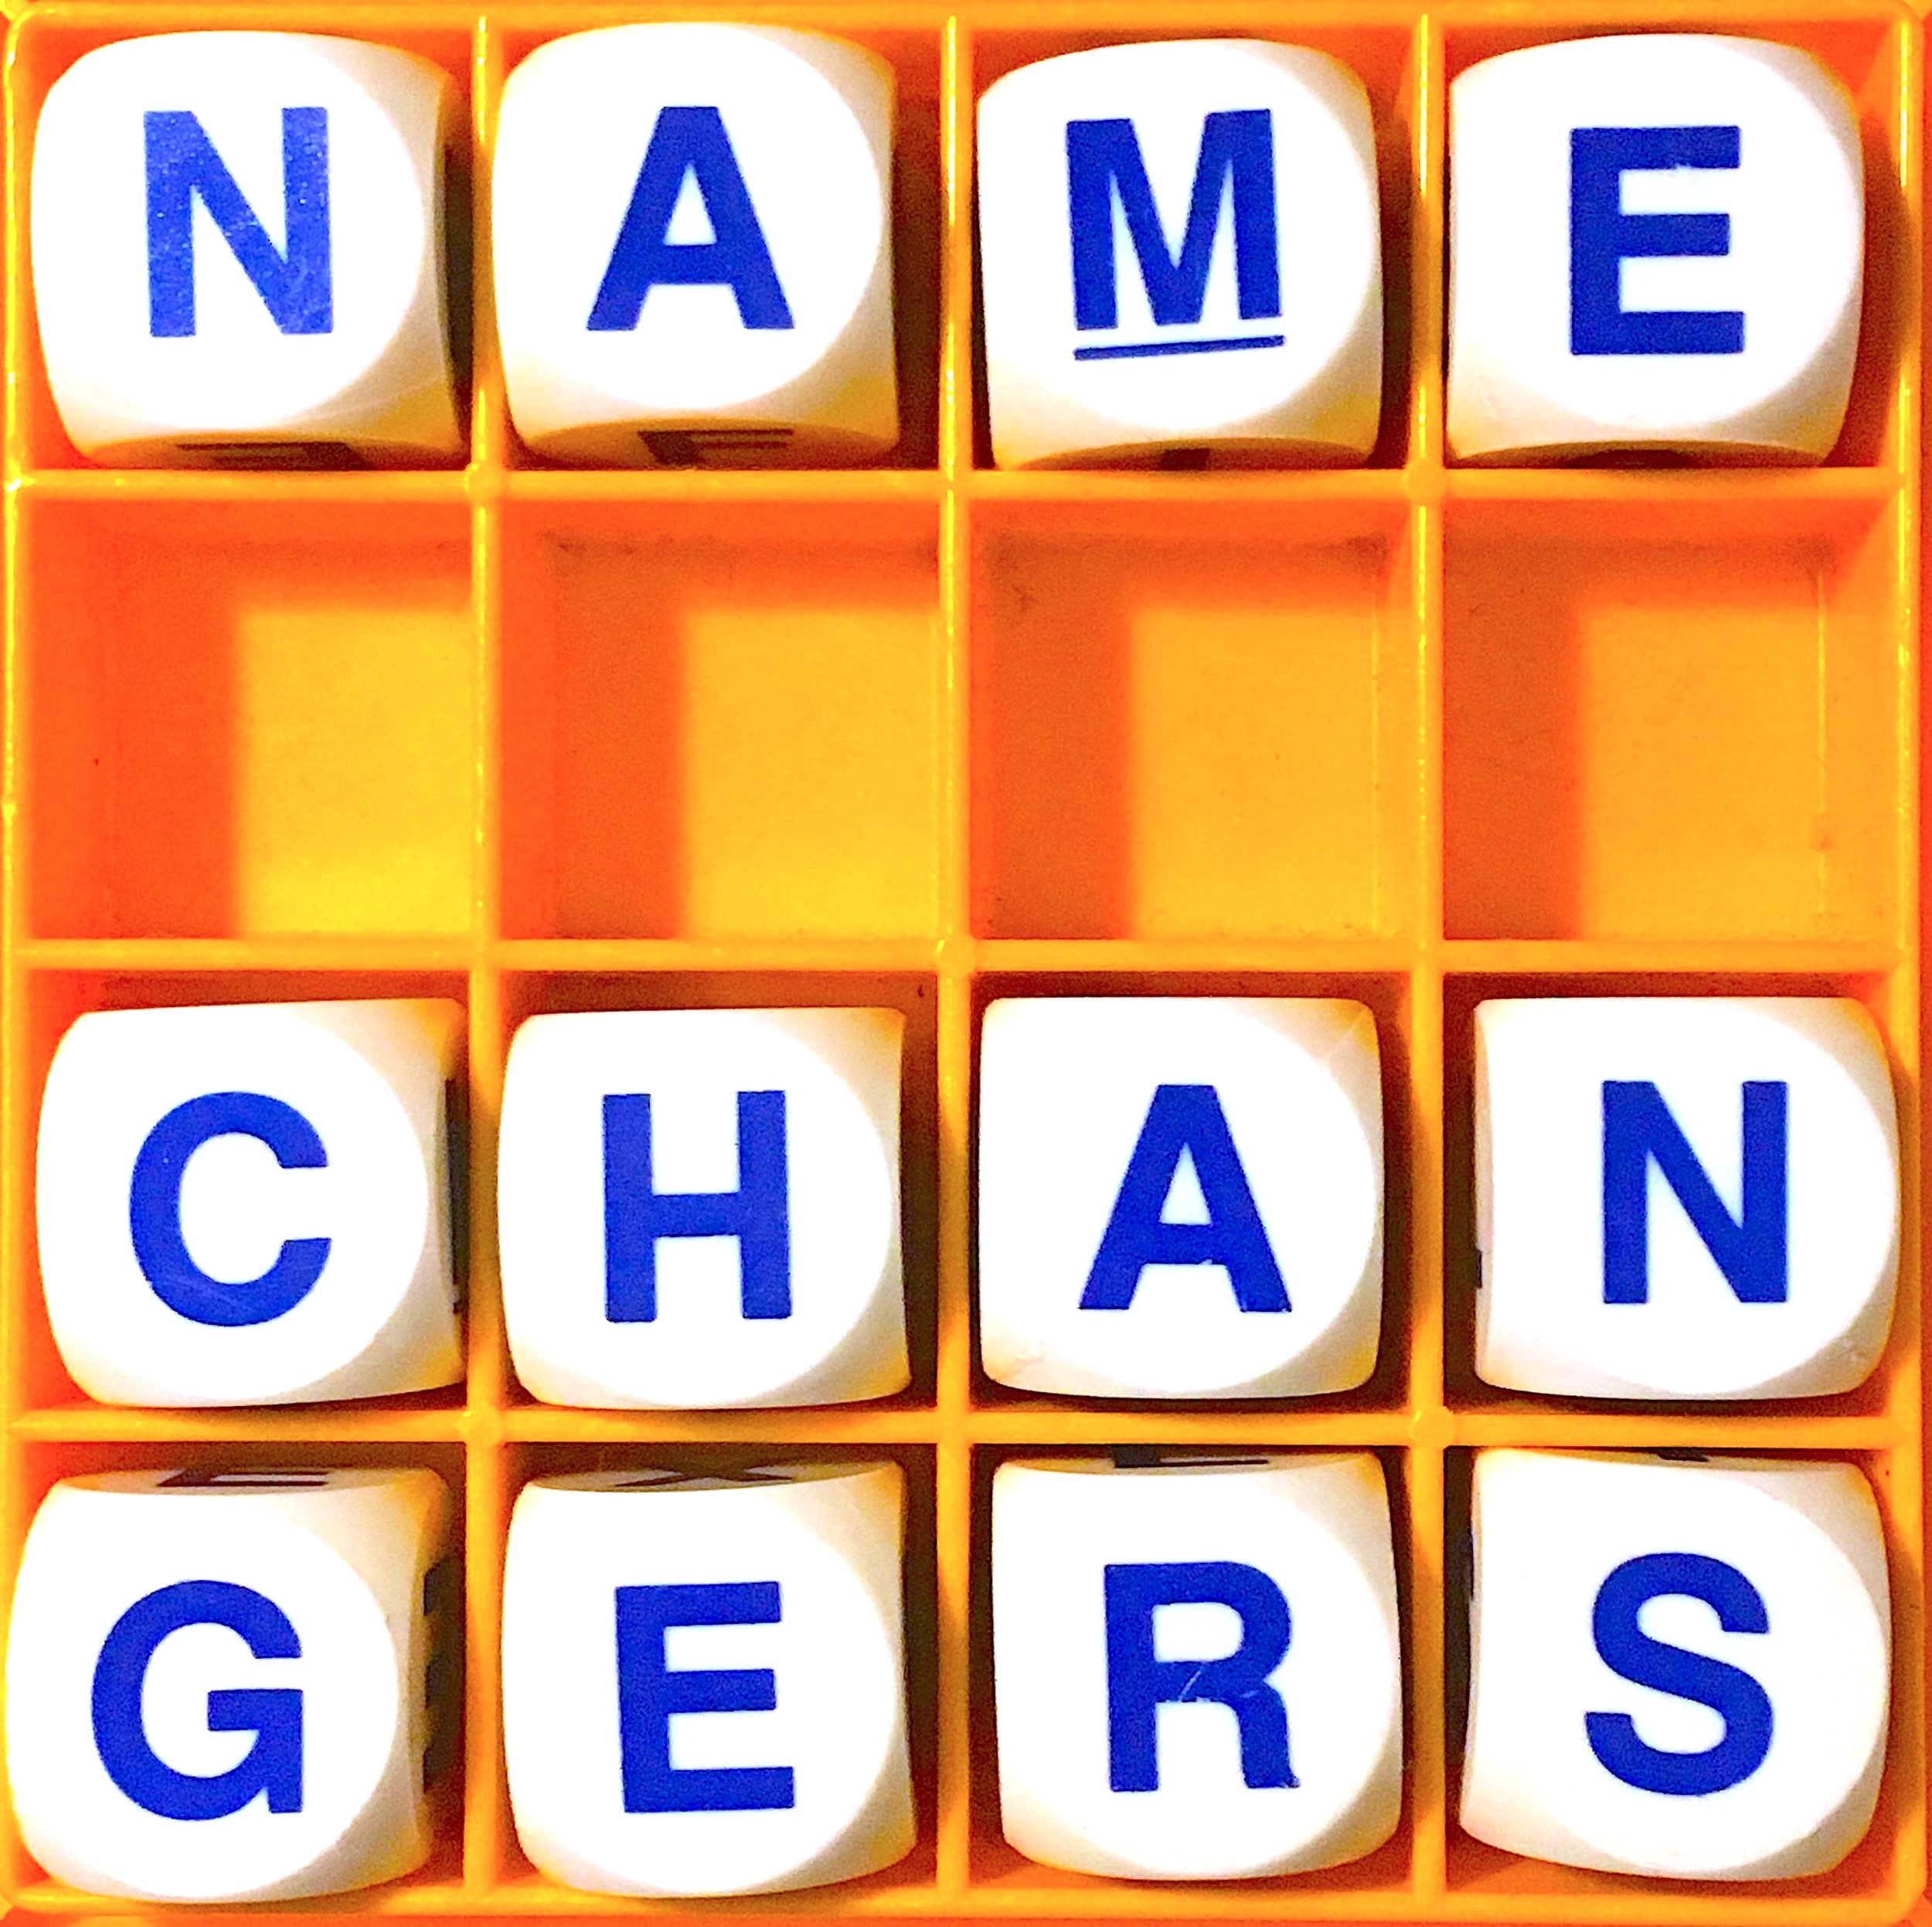 A88 Name Changers logo.jpg